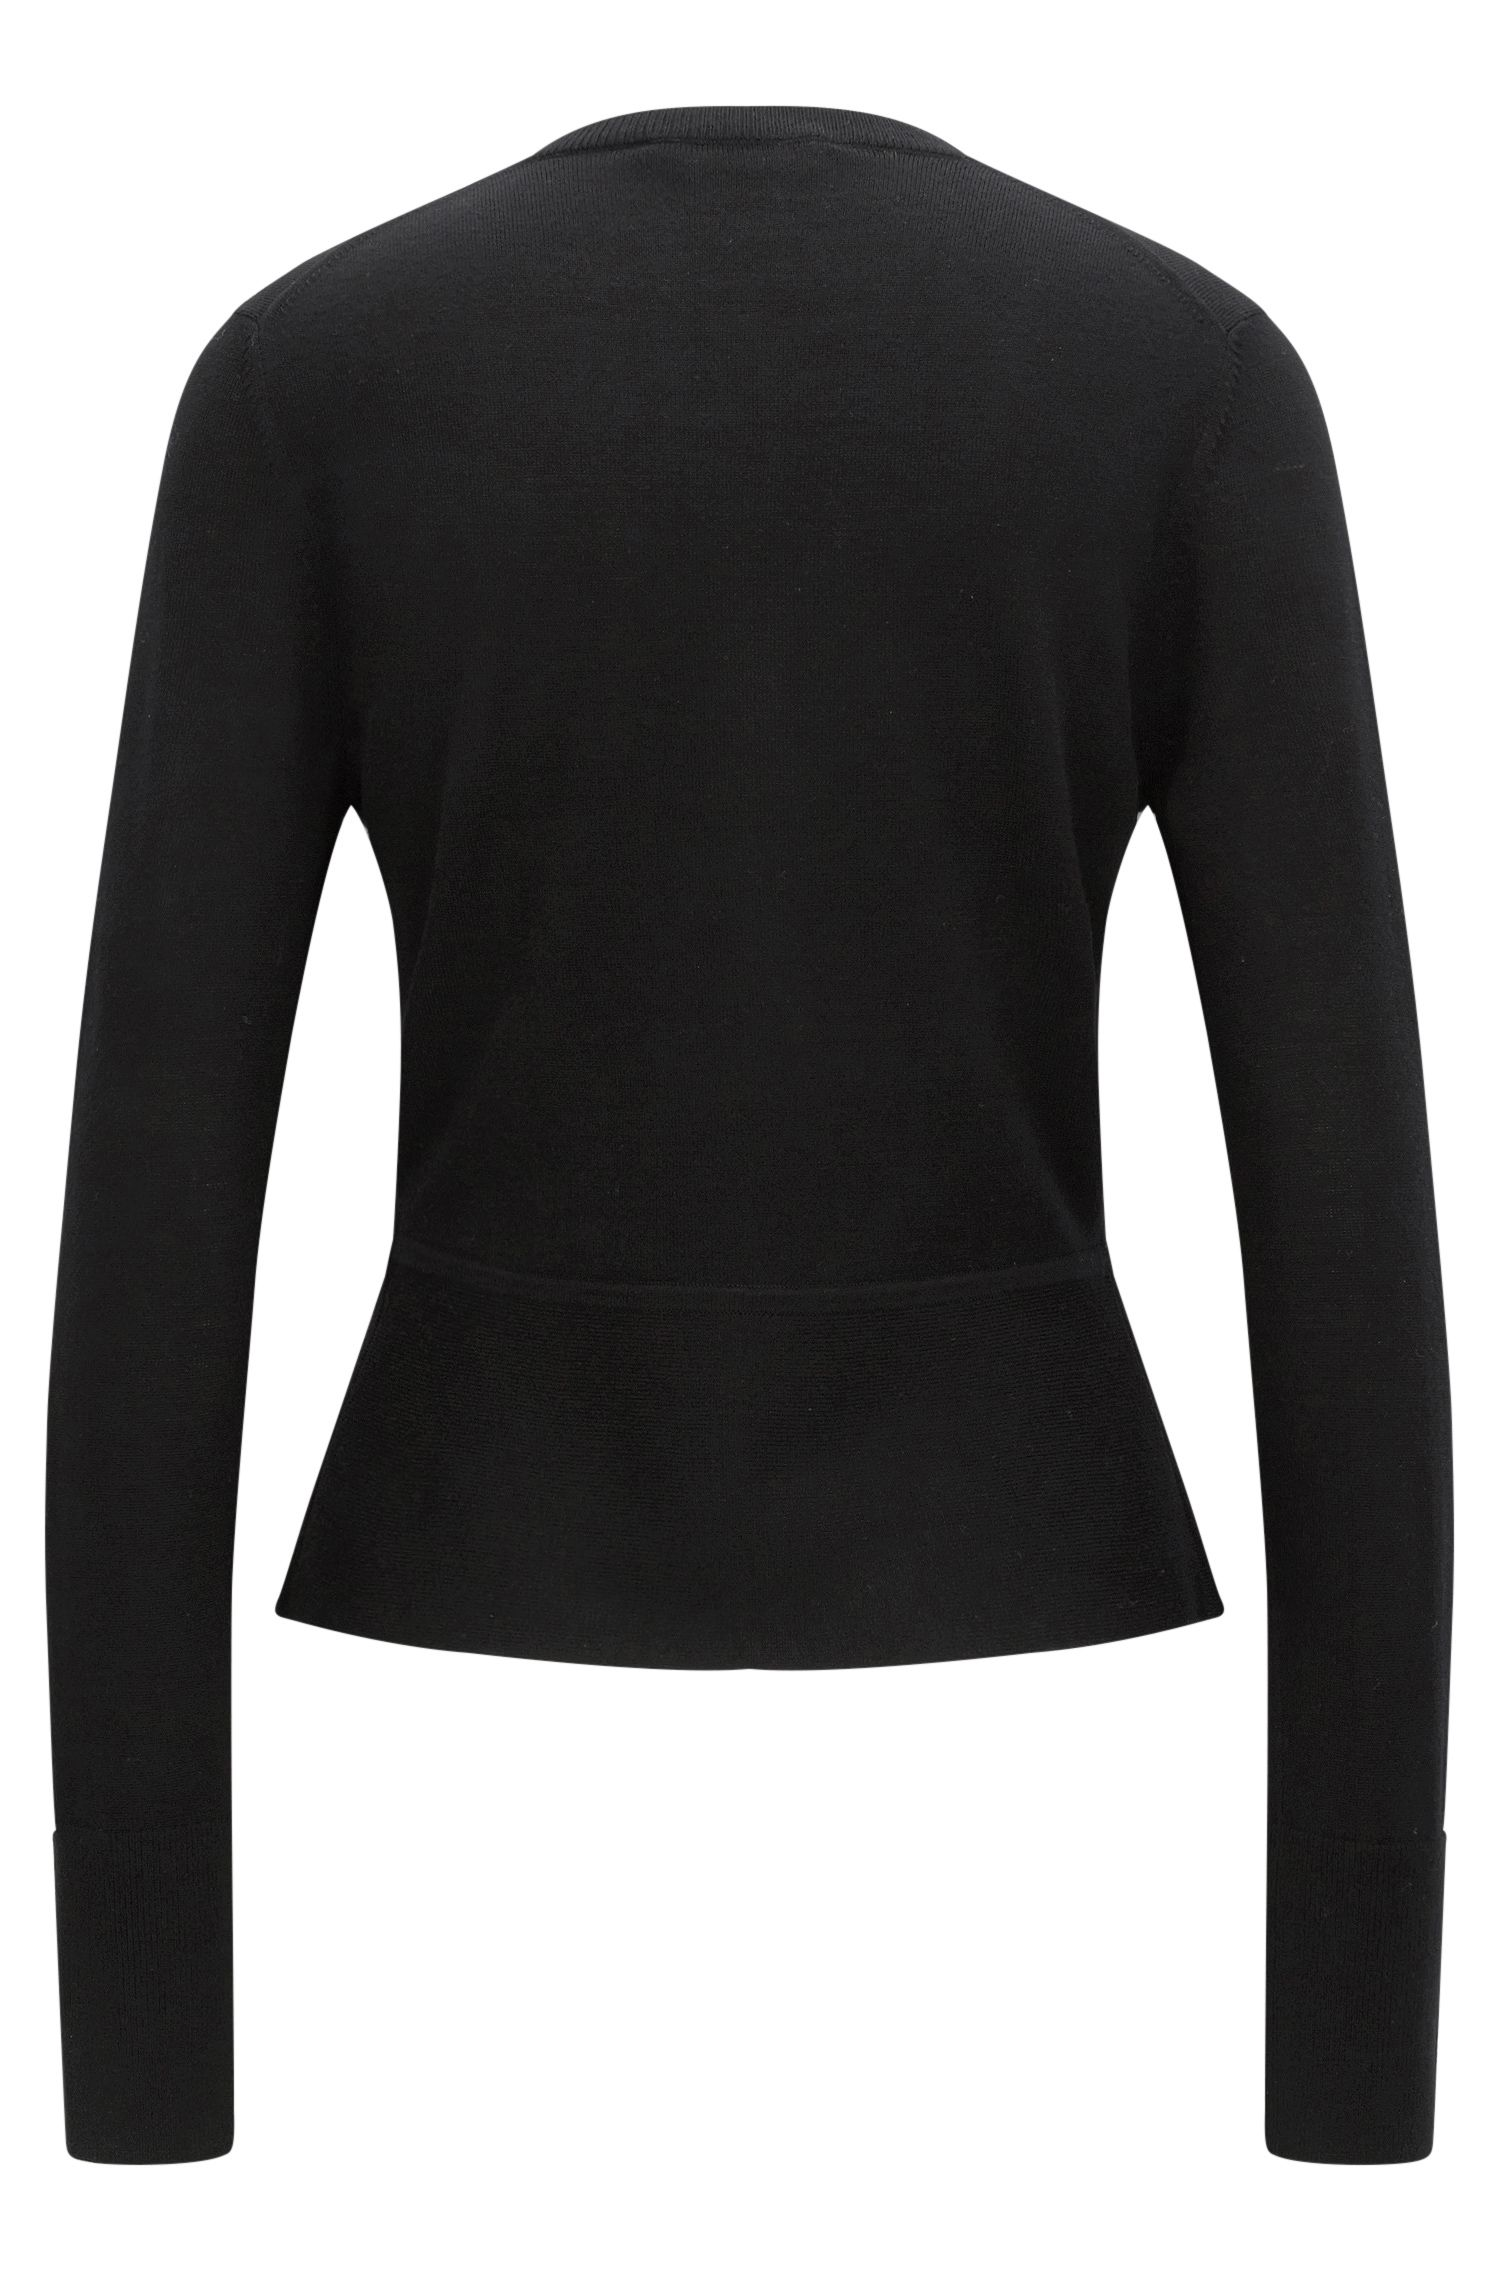 Peplum Merino Superfine Wool Sweater | Felija, Black